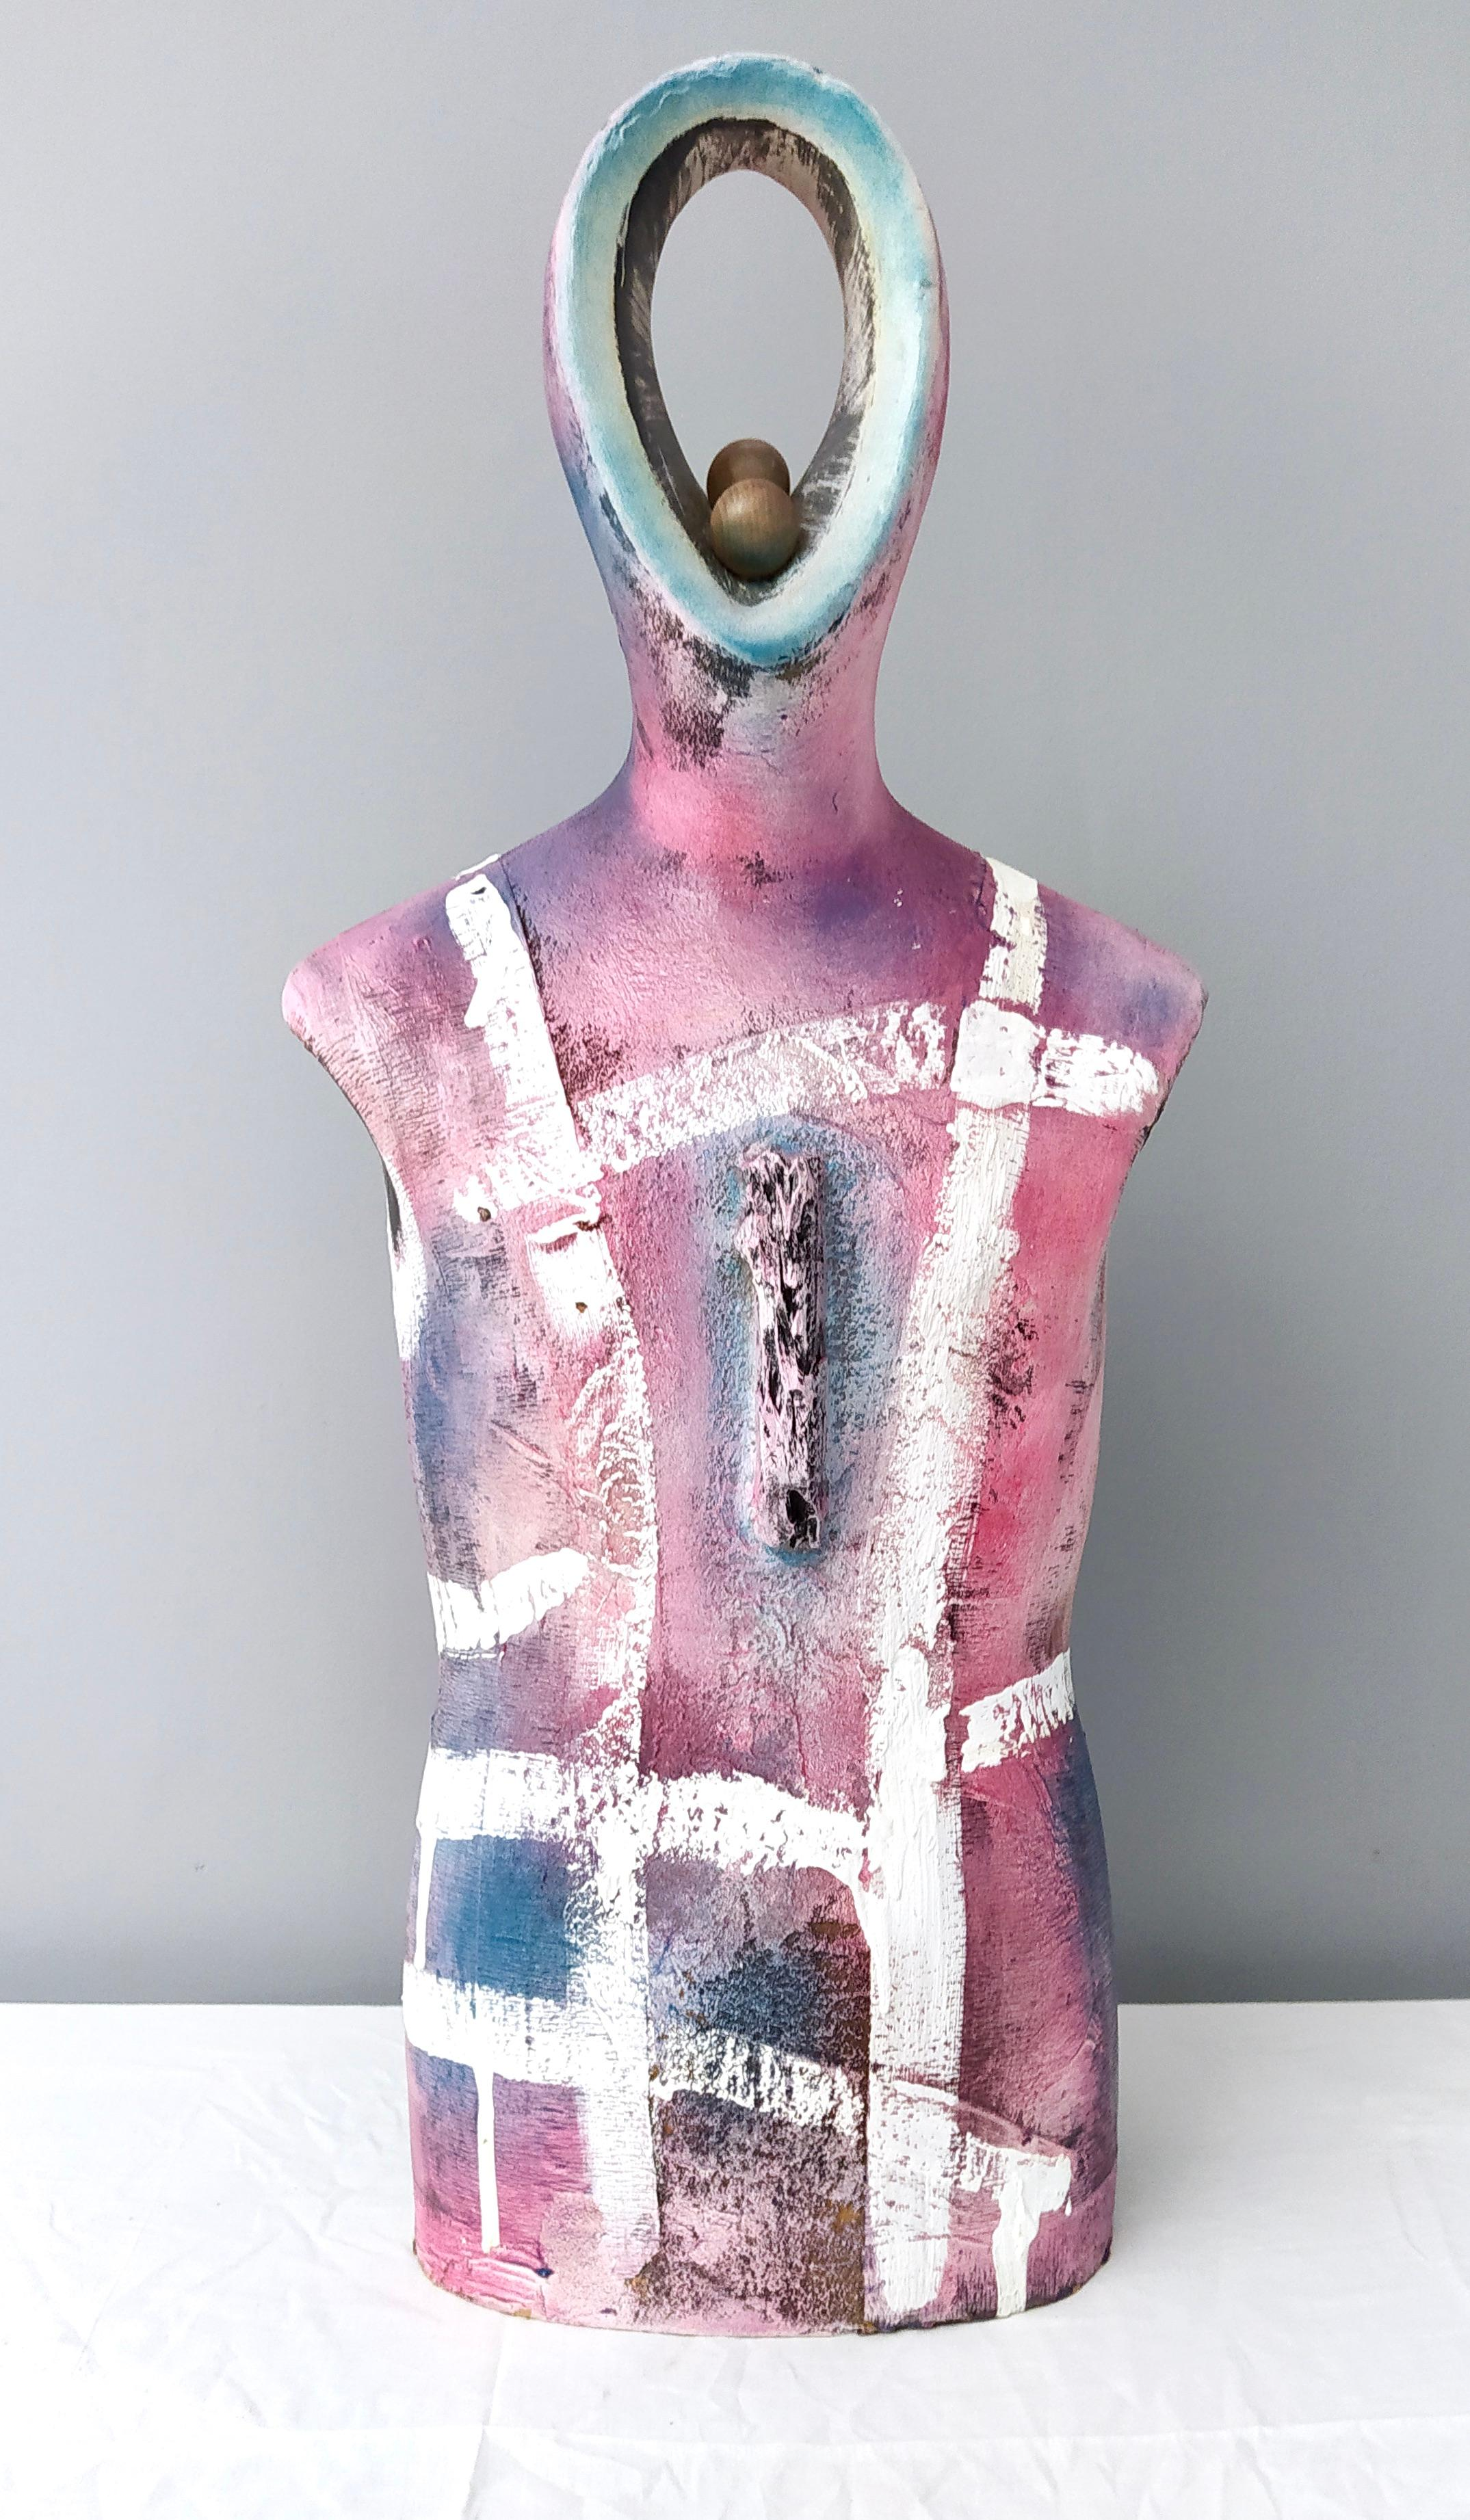 """""""Il narratore"""" by Enzio Wenk, 2020 - Pink Wooden Sculpture, Neo-Expressionism"""